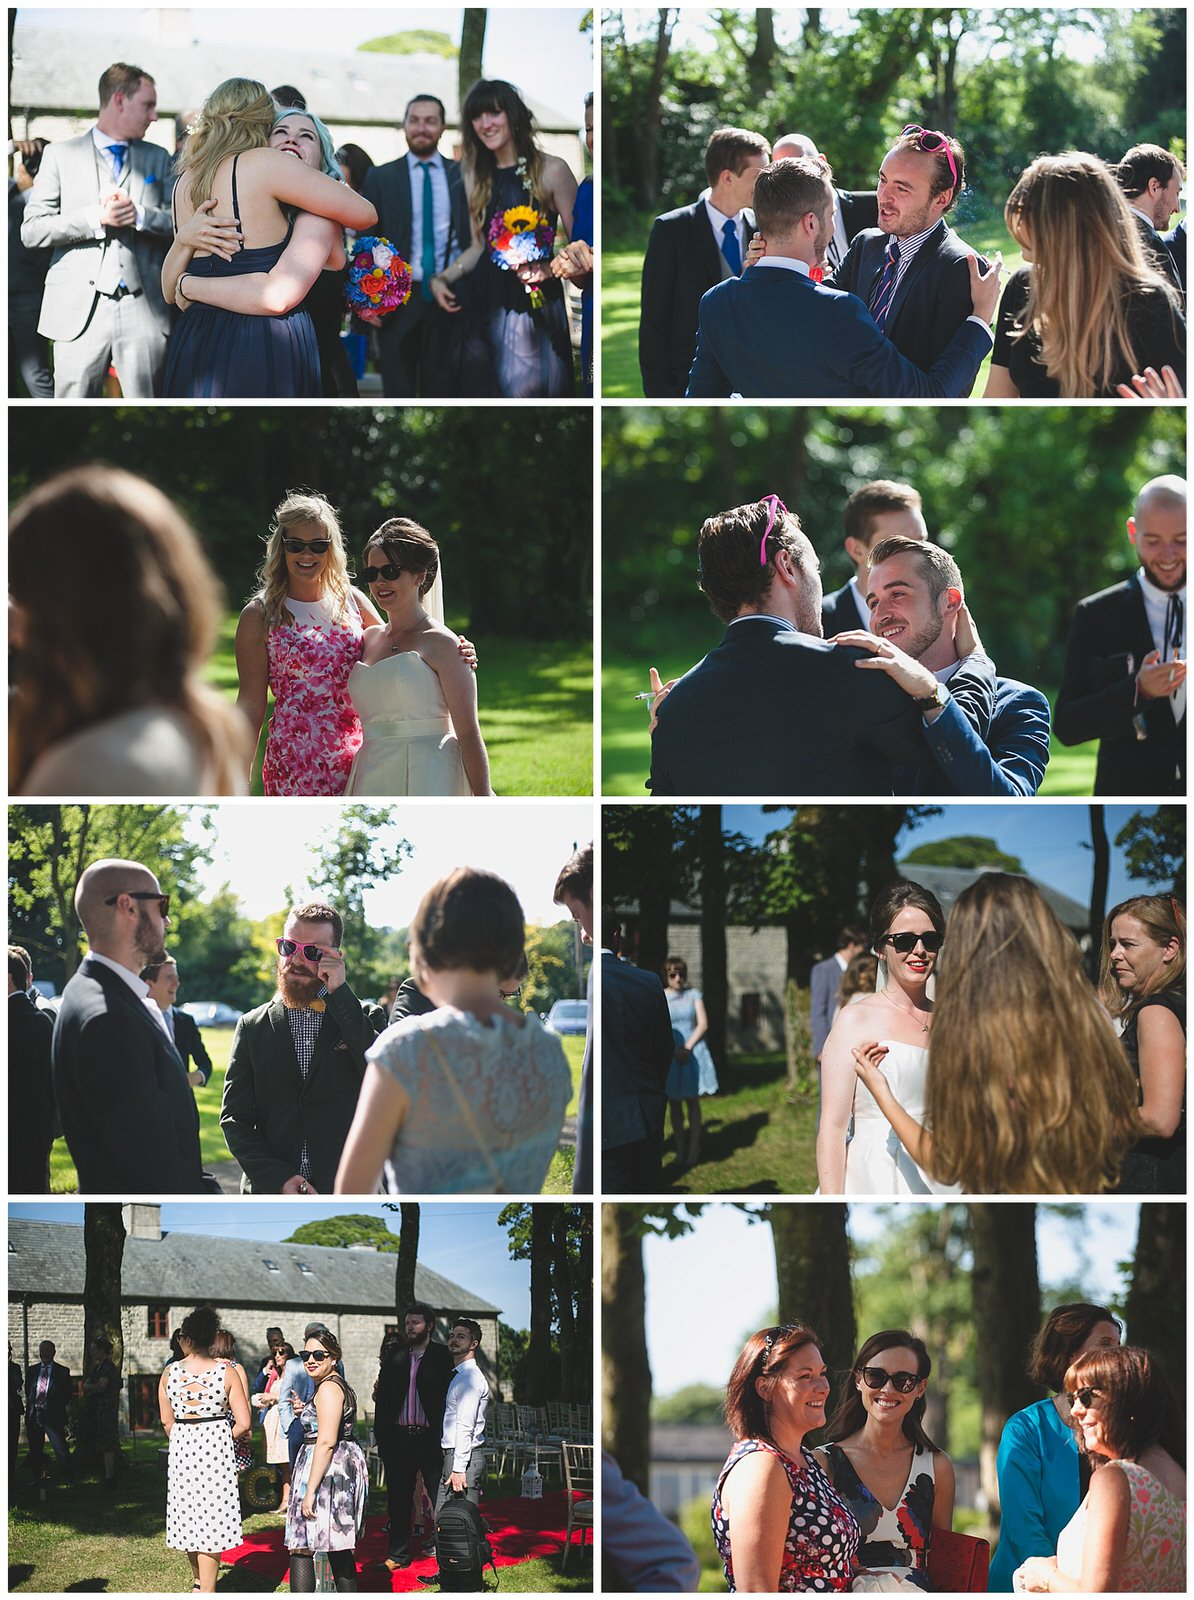 candid snaps of guests and friends hugging after the wedding ceremony